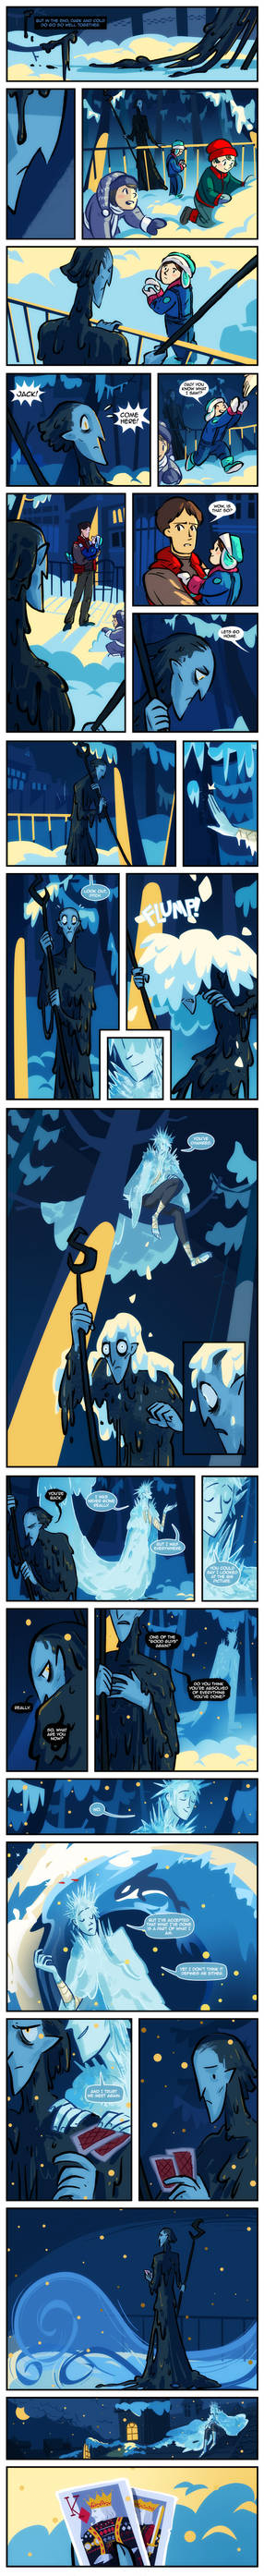 RotG: Dark and Cold VIII